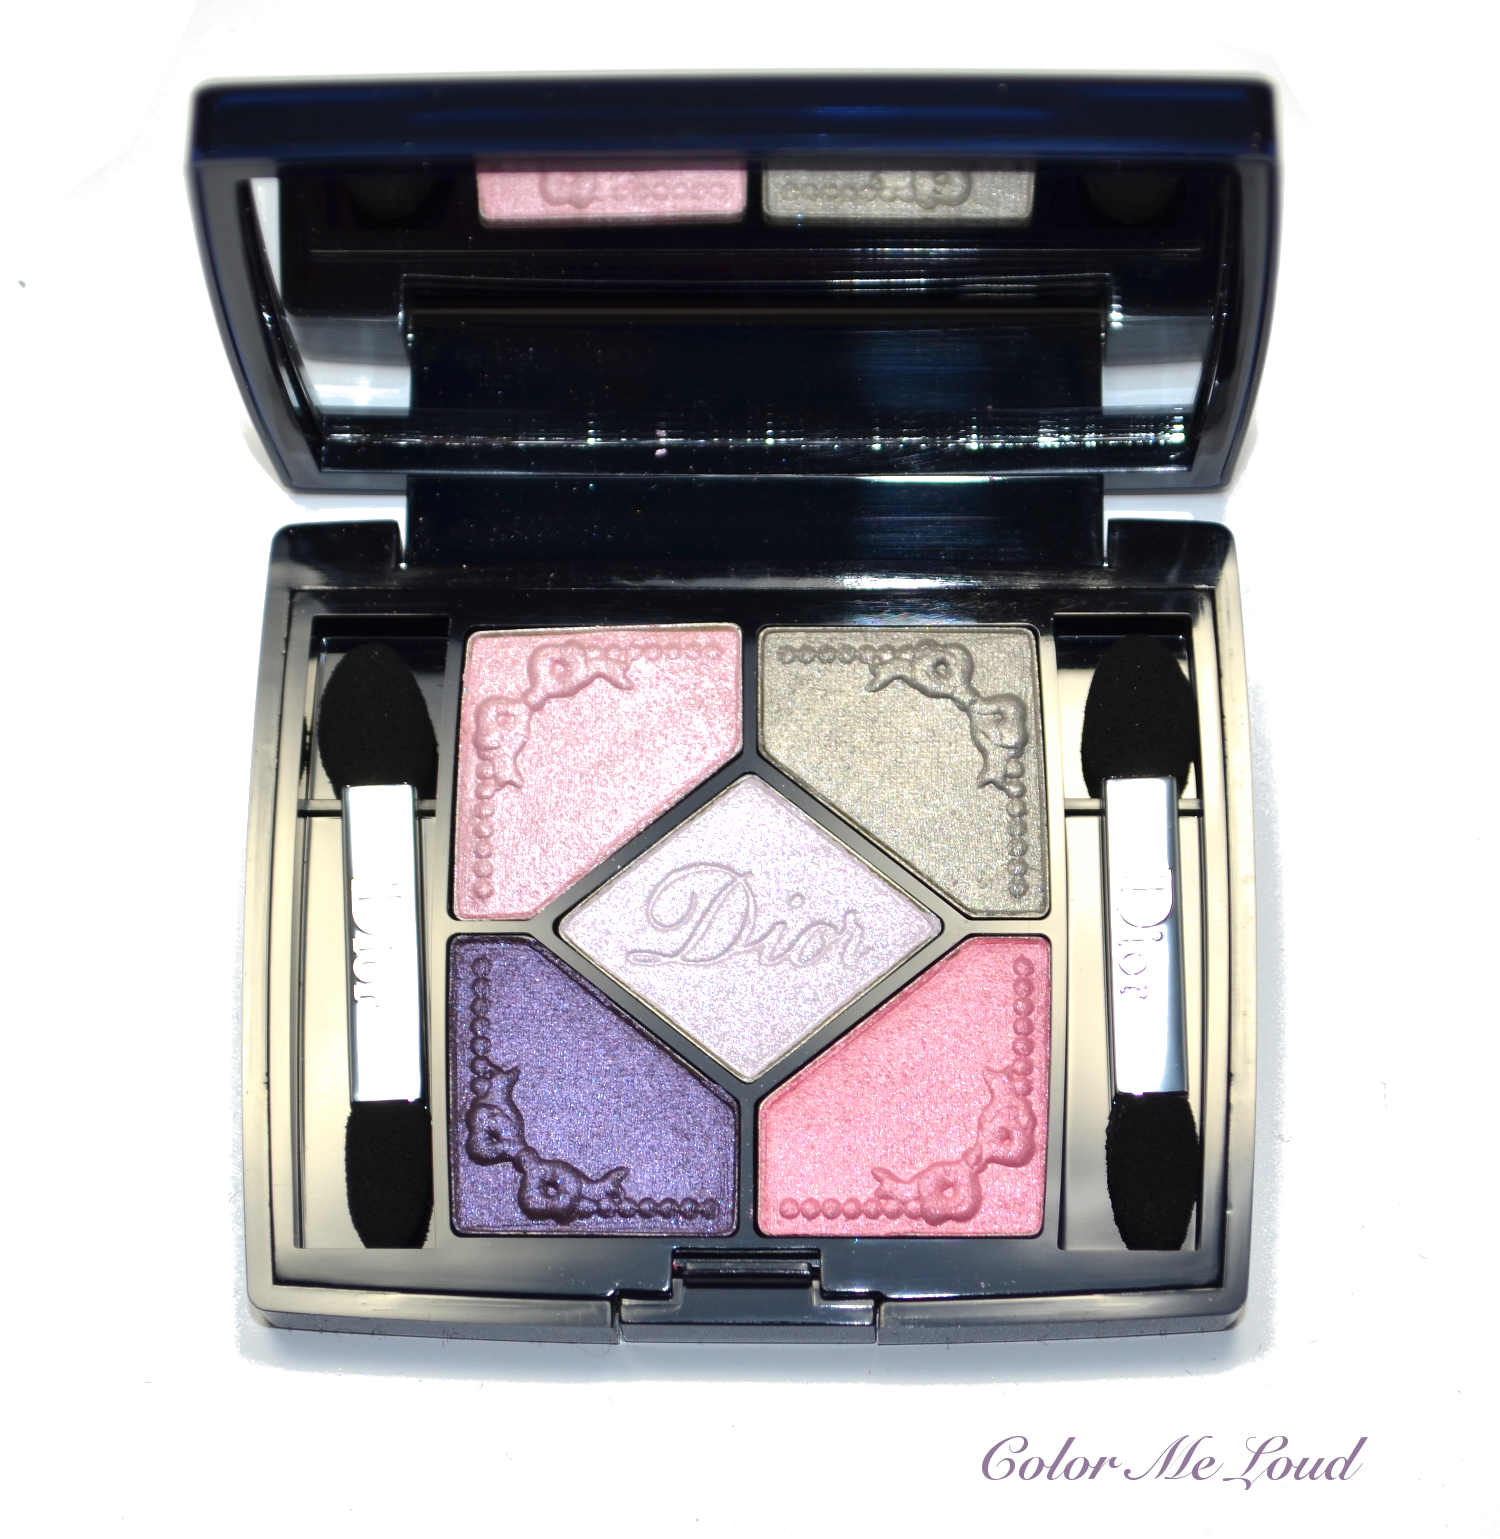 Dior beauty 5 couleurs eyeshadow palette trianon edition.